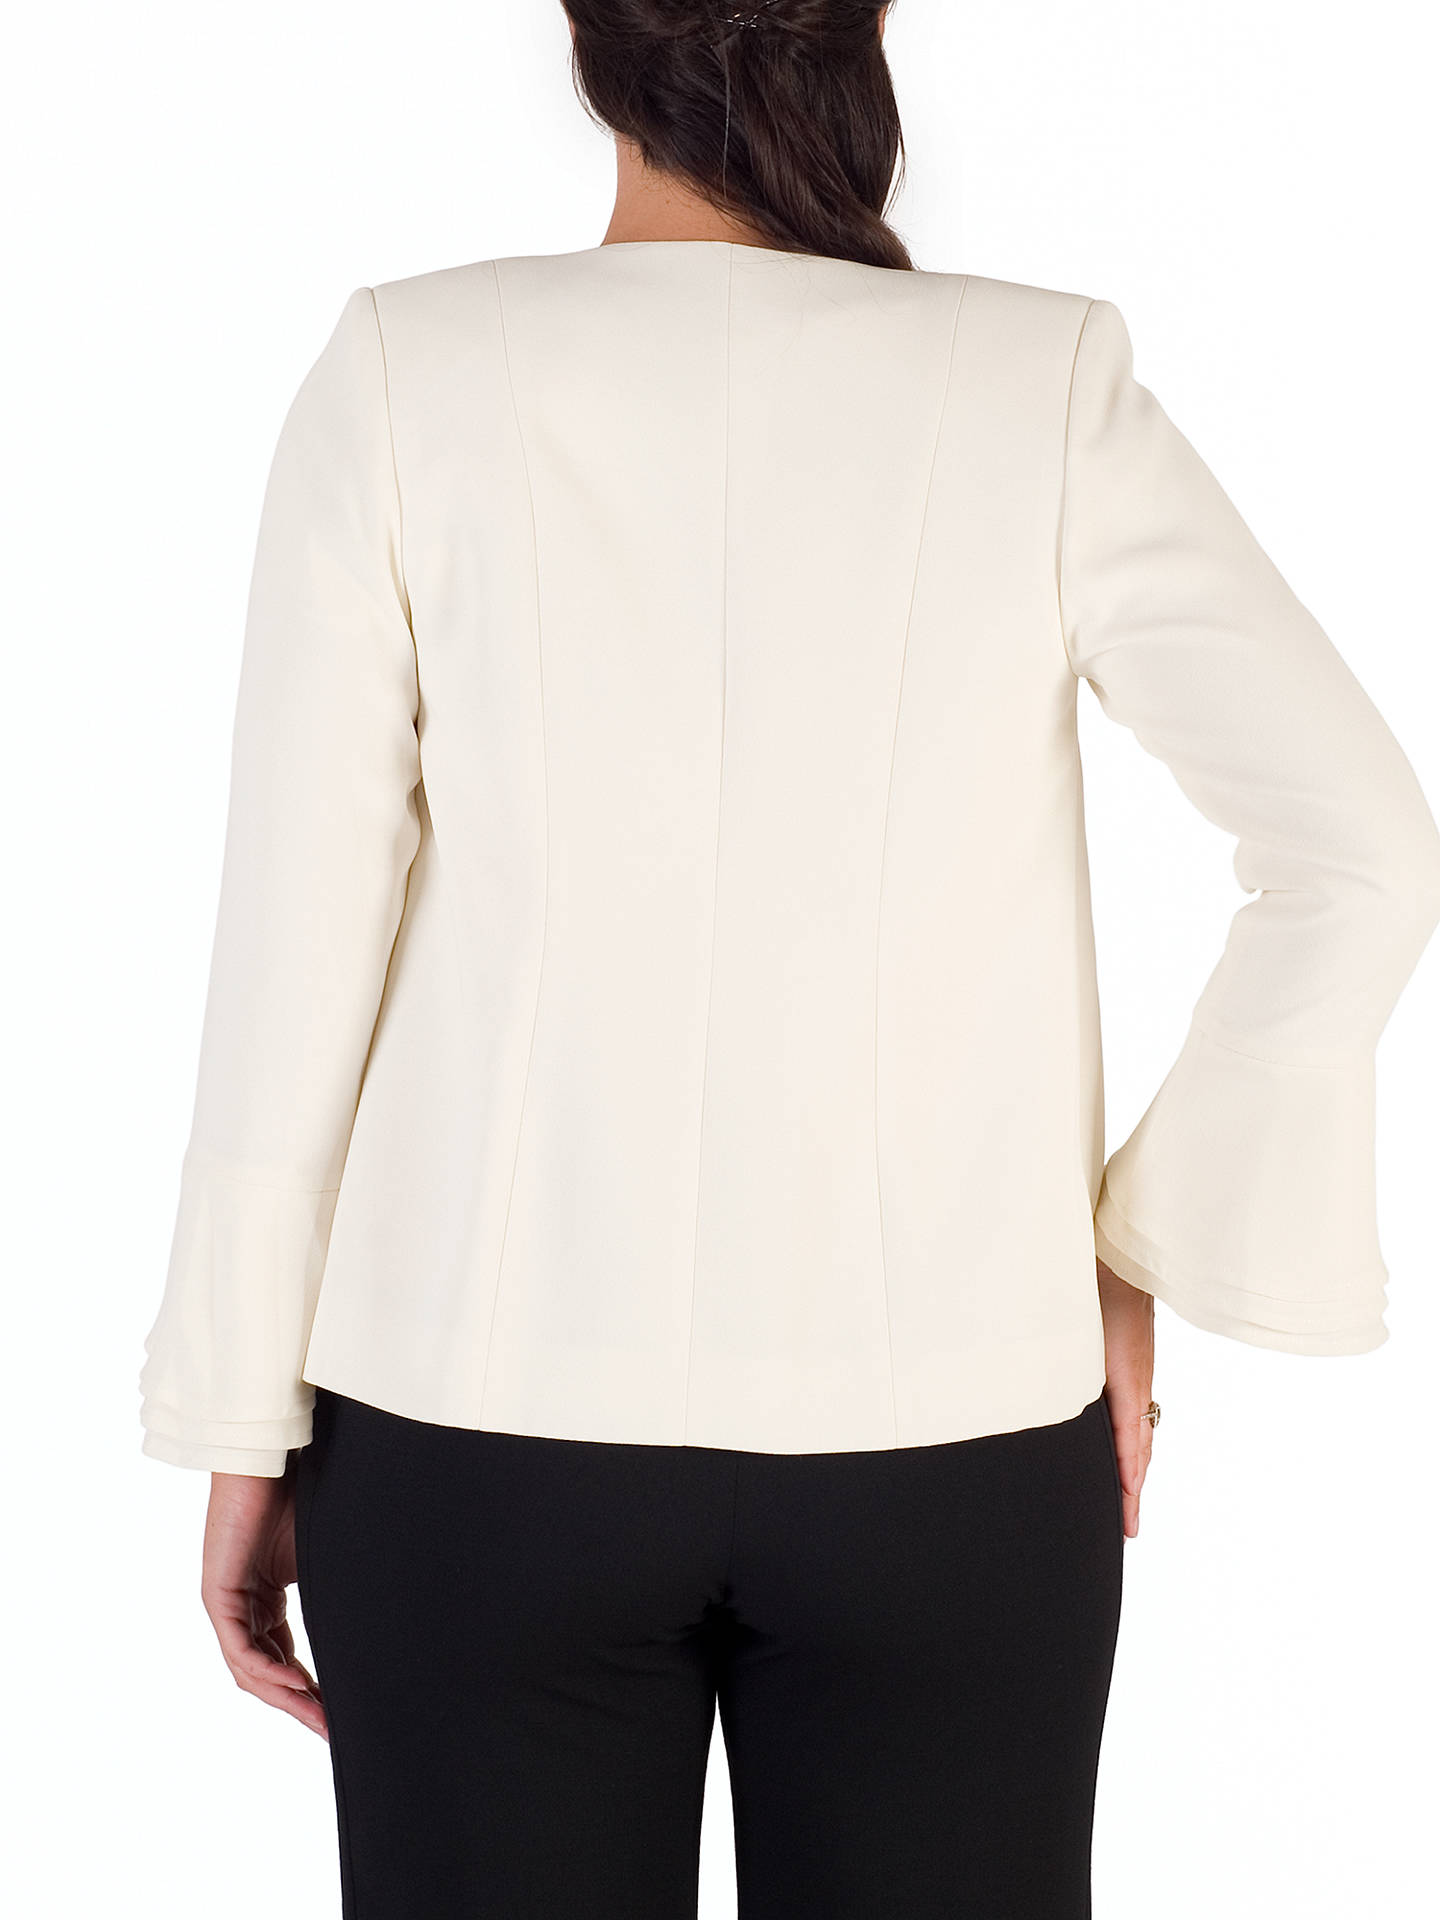 BuyChesca Flounce Cuff Jacket, White, 12 Online at johnlewis.com